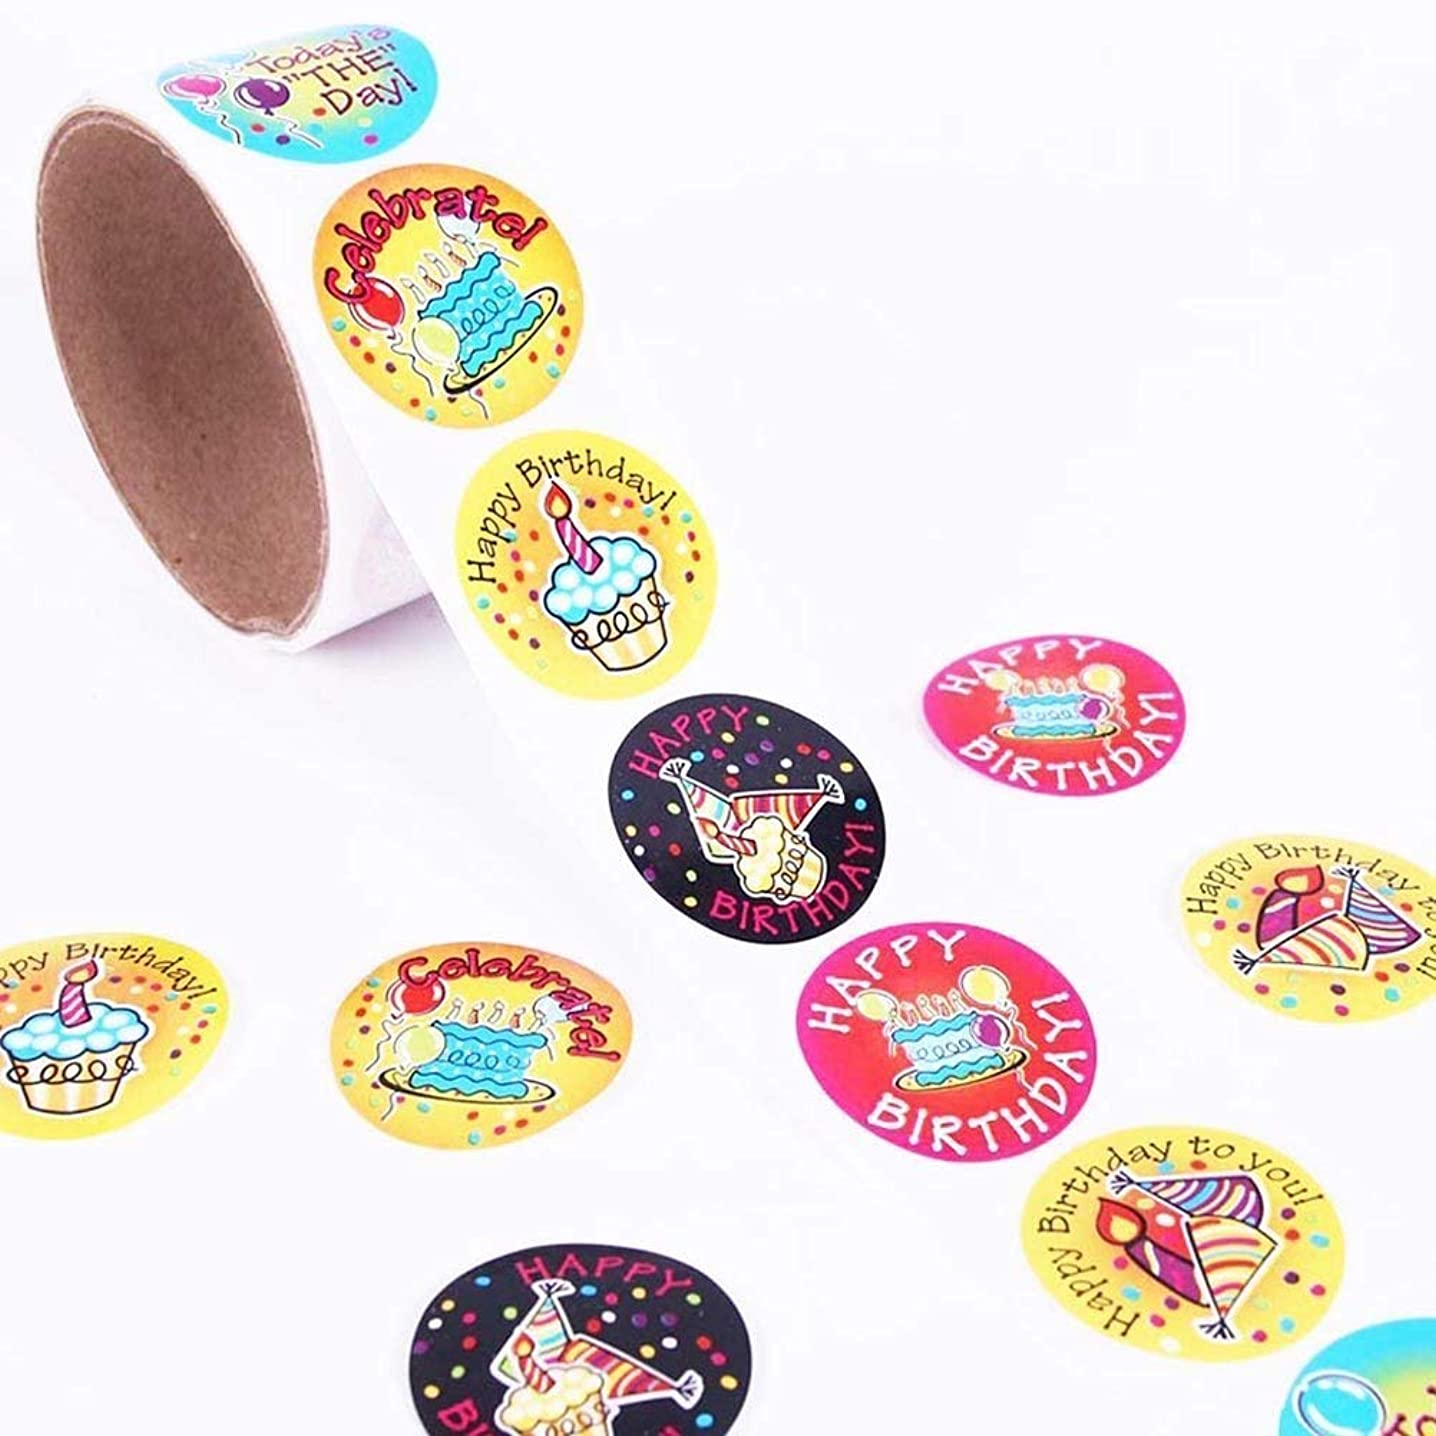 Konsait Birthday Stickers Roll, 300pcs Happy Birthday Reward Stickers Self-Stick Labels for Cards, Envelopes, Craft, Decoration, Kids Birthday Party Favor Supplies, Party Bag Filler